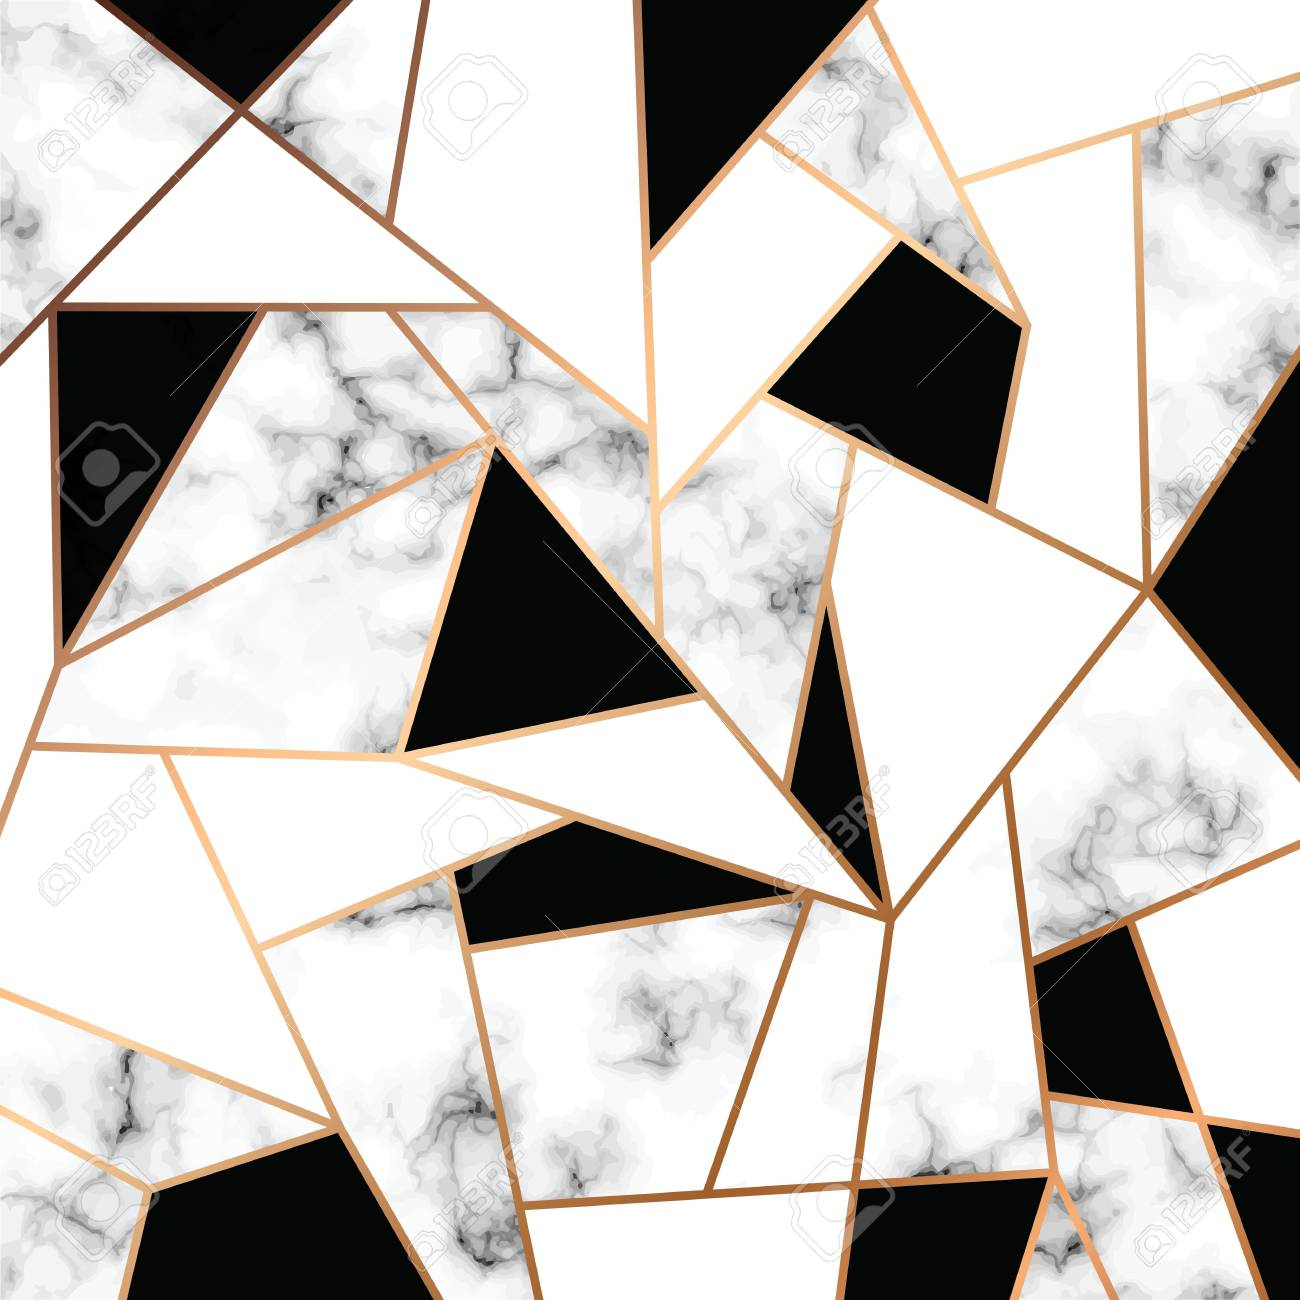 Vector marble texture design with golden geometric lines, black and white marbling surface, modern luxurious background, vector illustration - 102156691